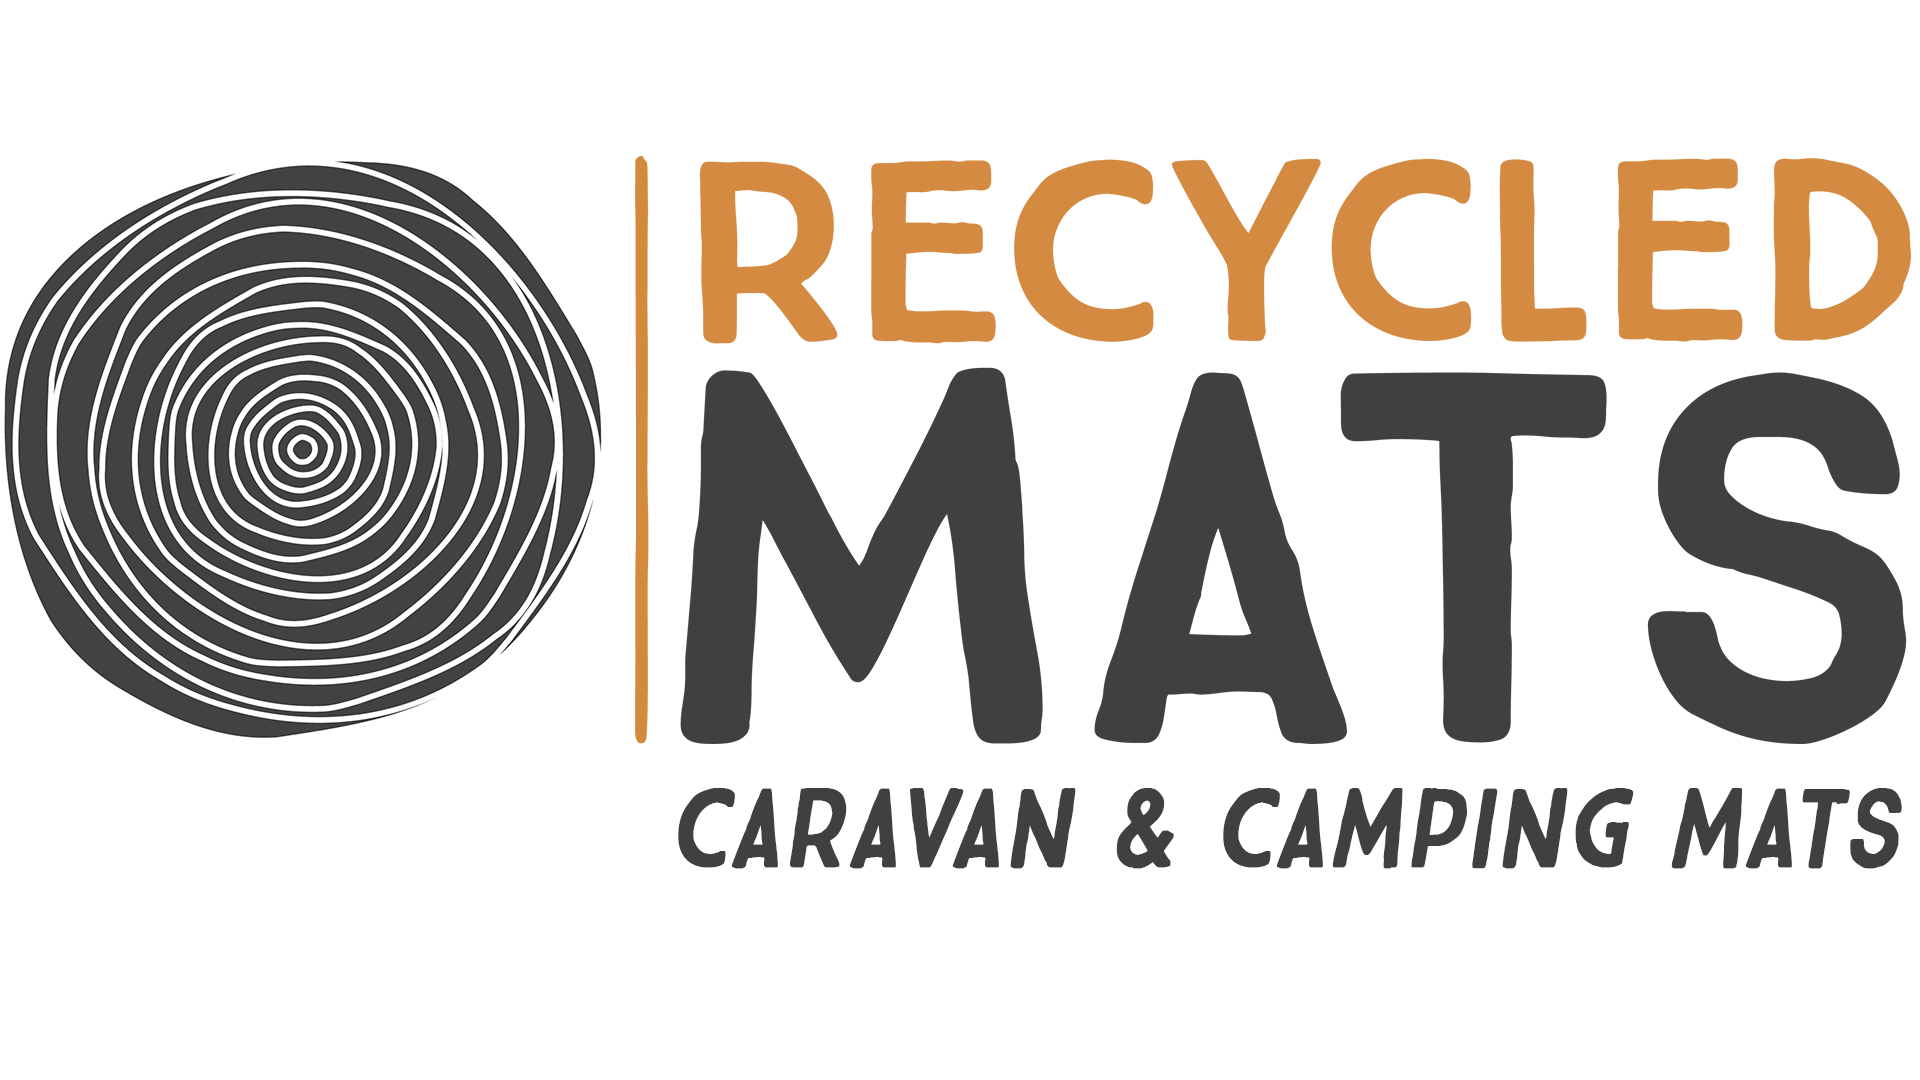 RECYCLEDMATS_LOGO_STACKED CARAVANCAMPING.png